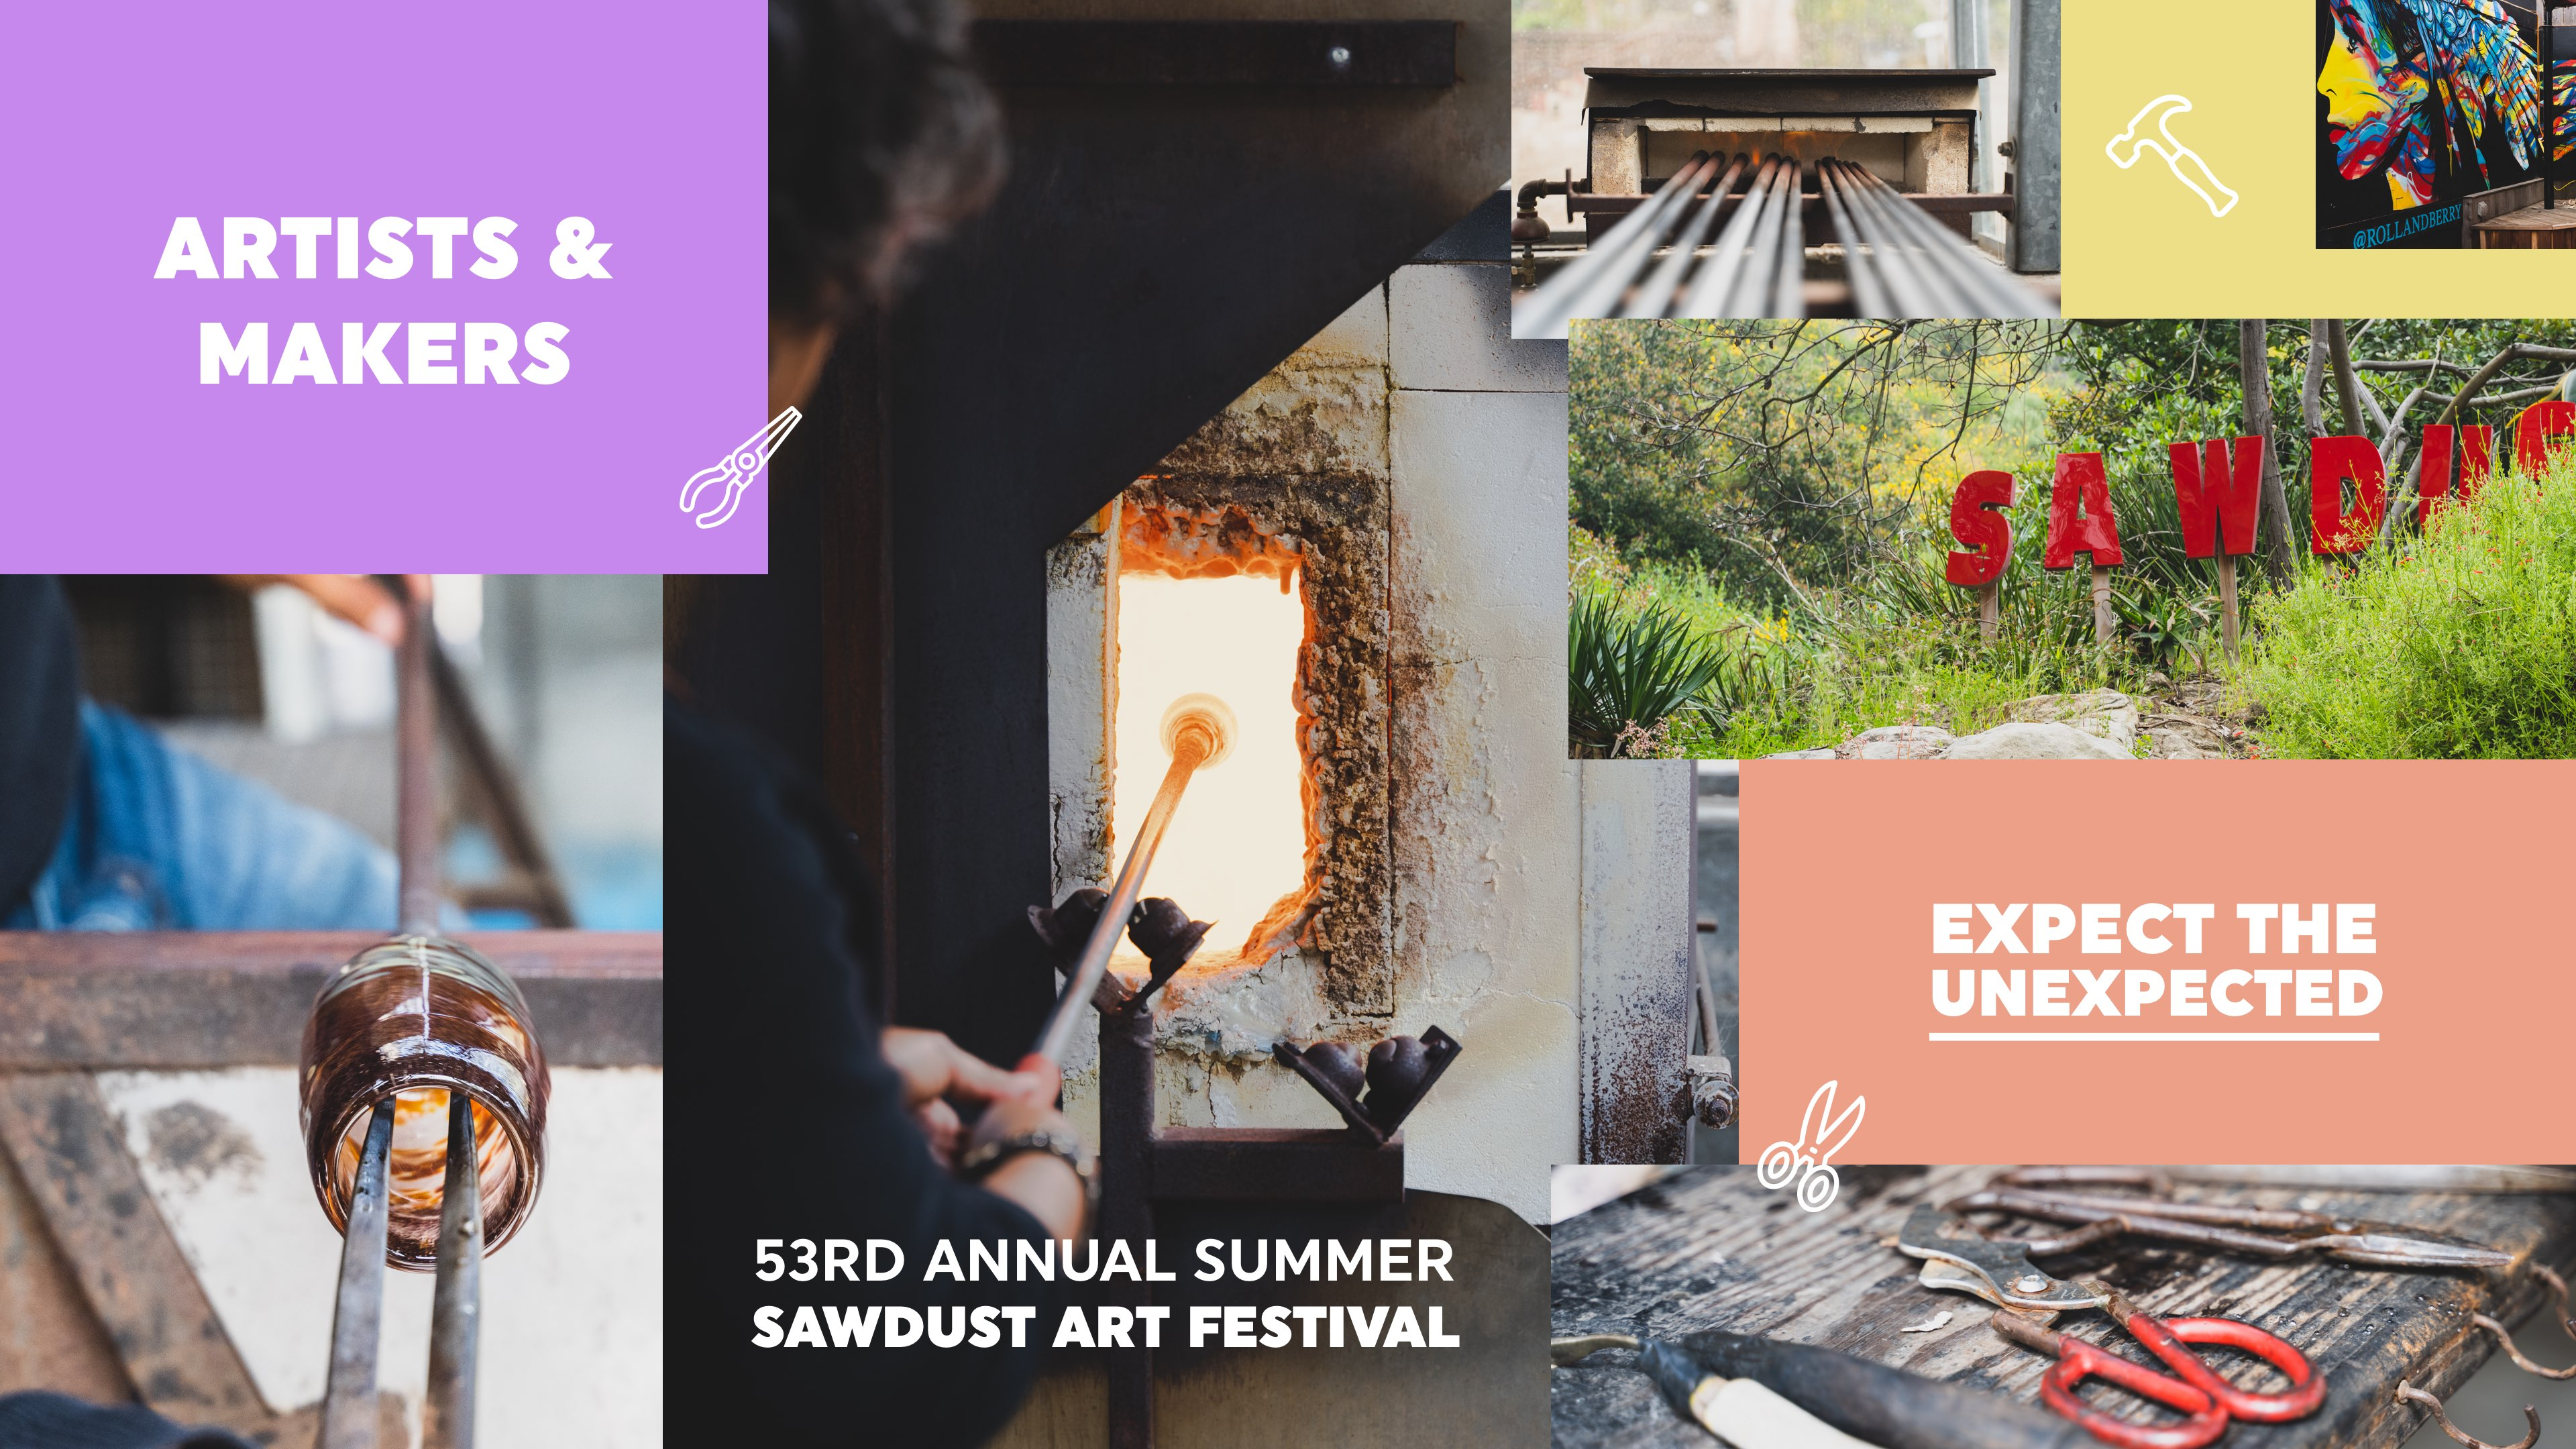 The Sawdust Art Festival in Laguna Beach hires Rareview